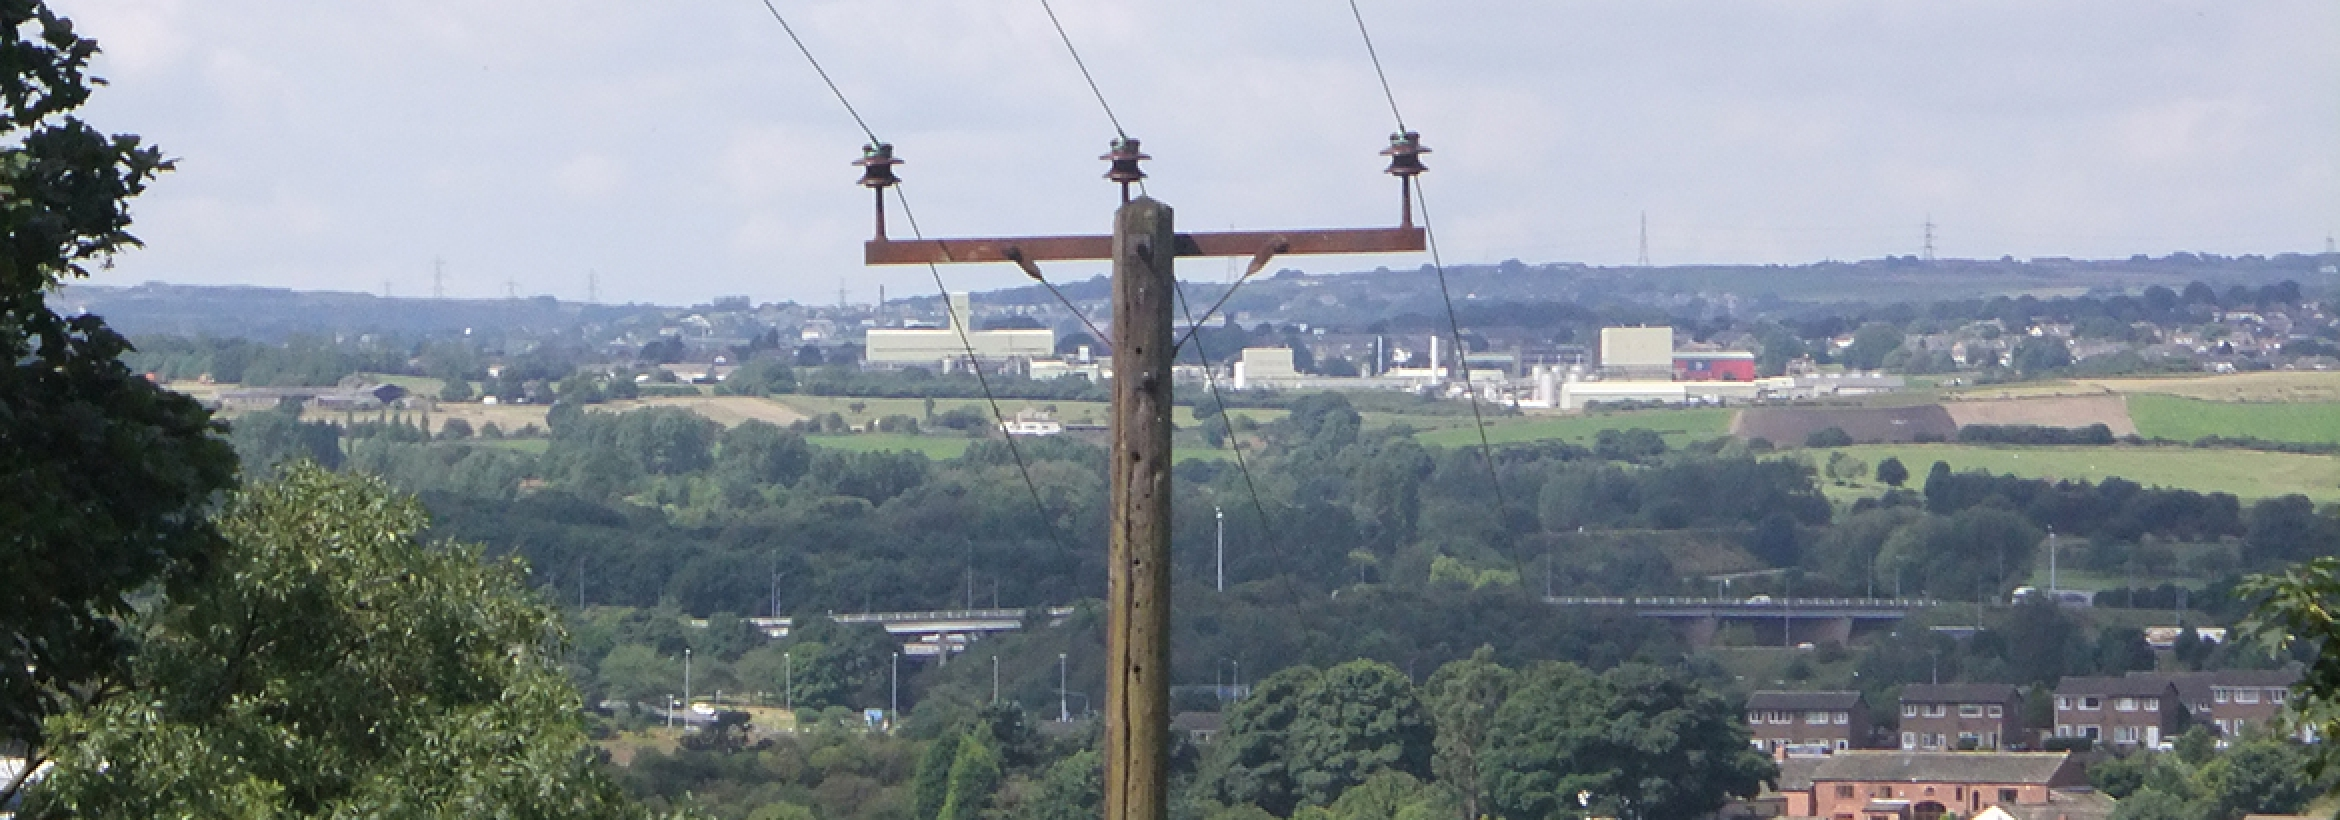 Electricity cables on pillars distributing energy representing NFU Energy's wayleaves and easements support service